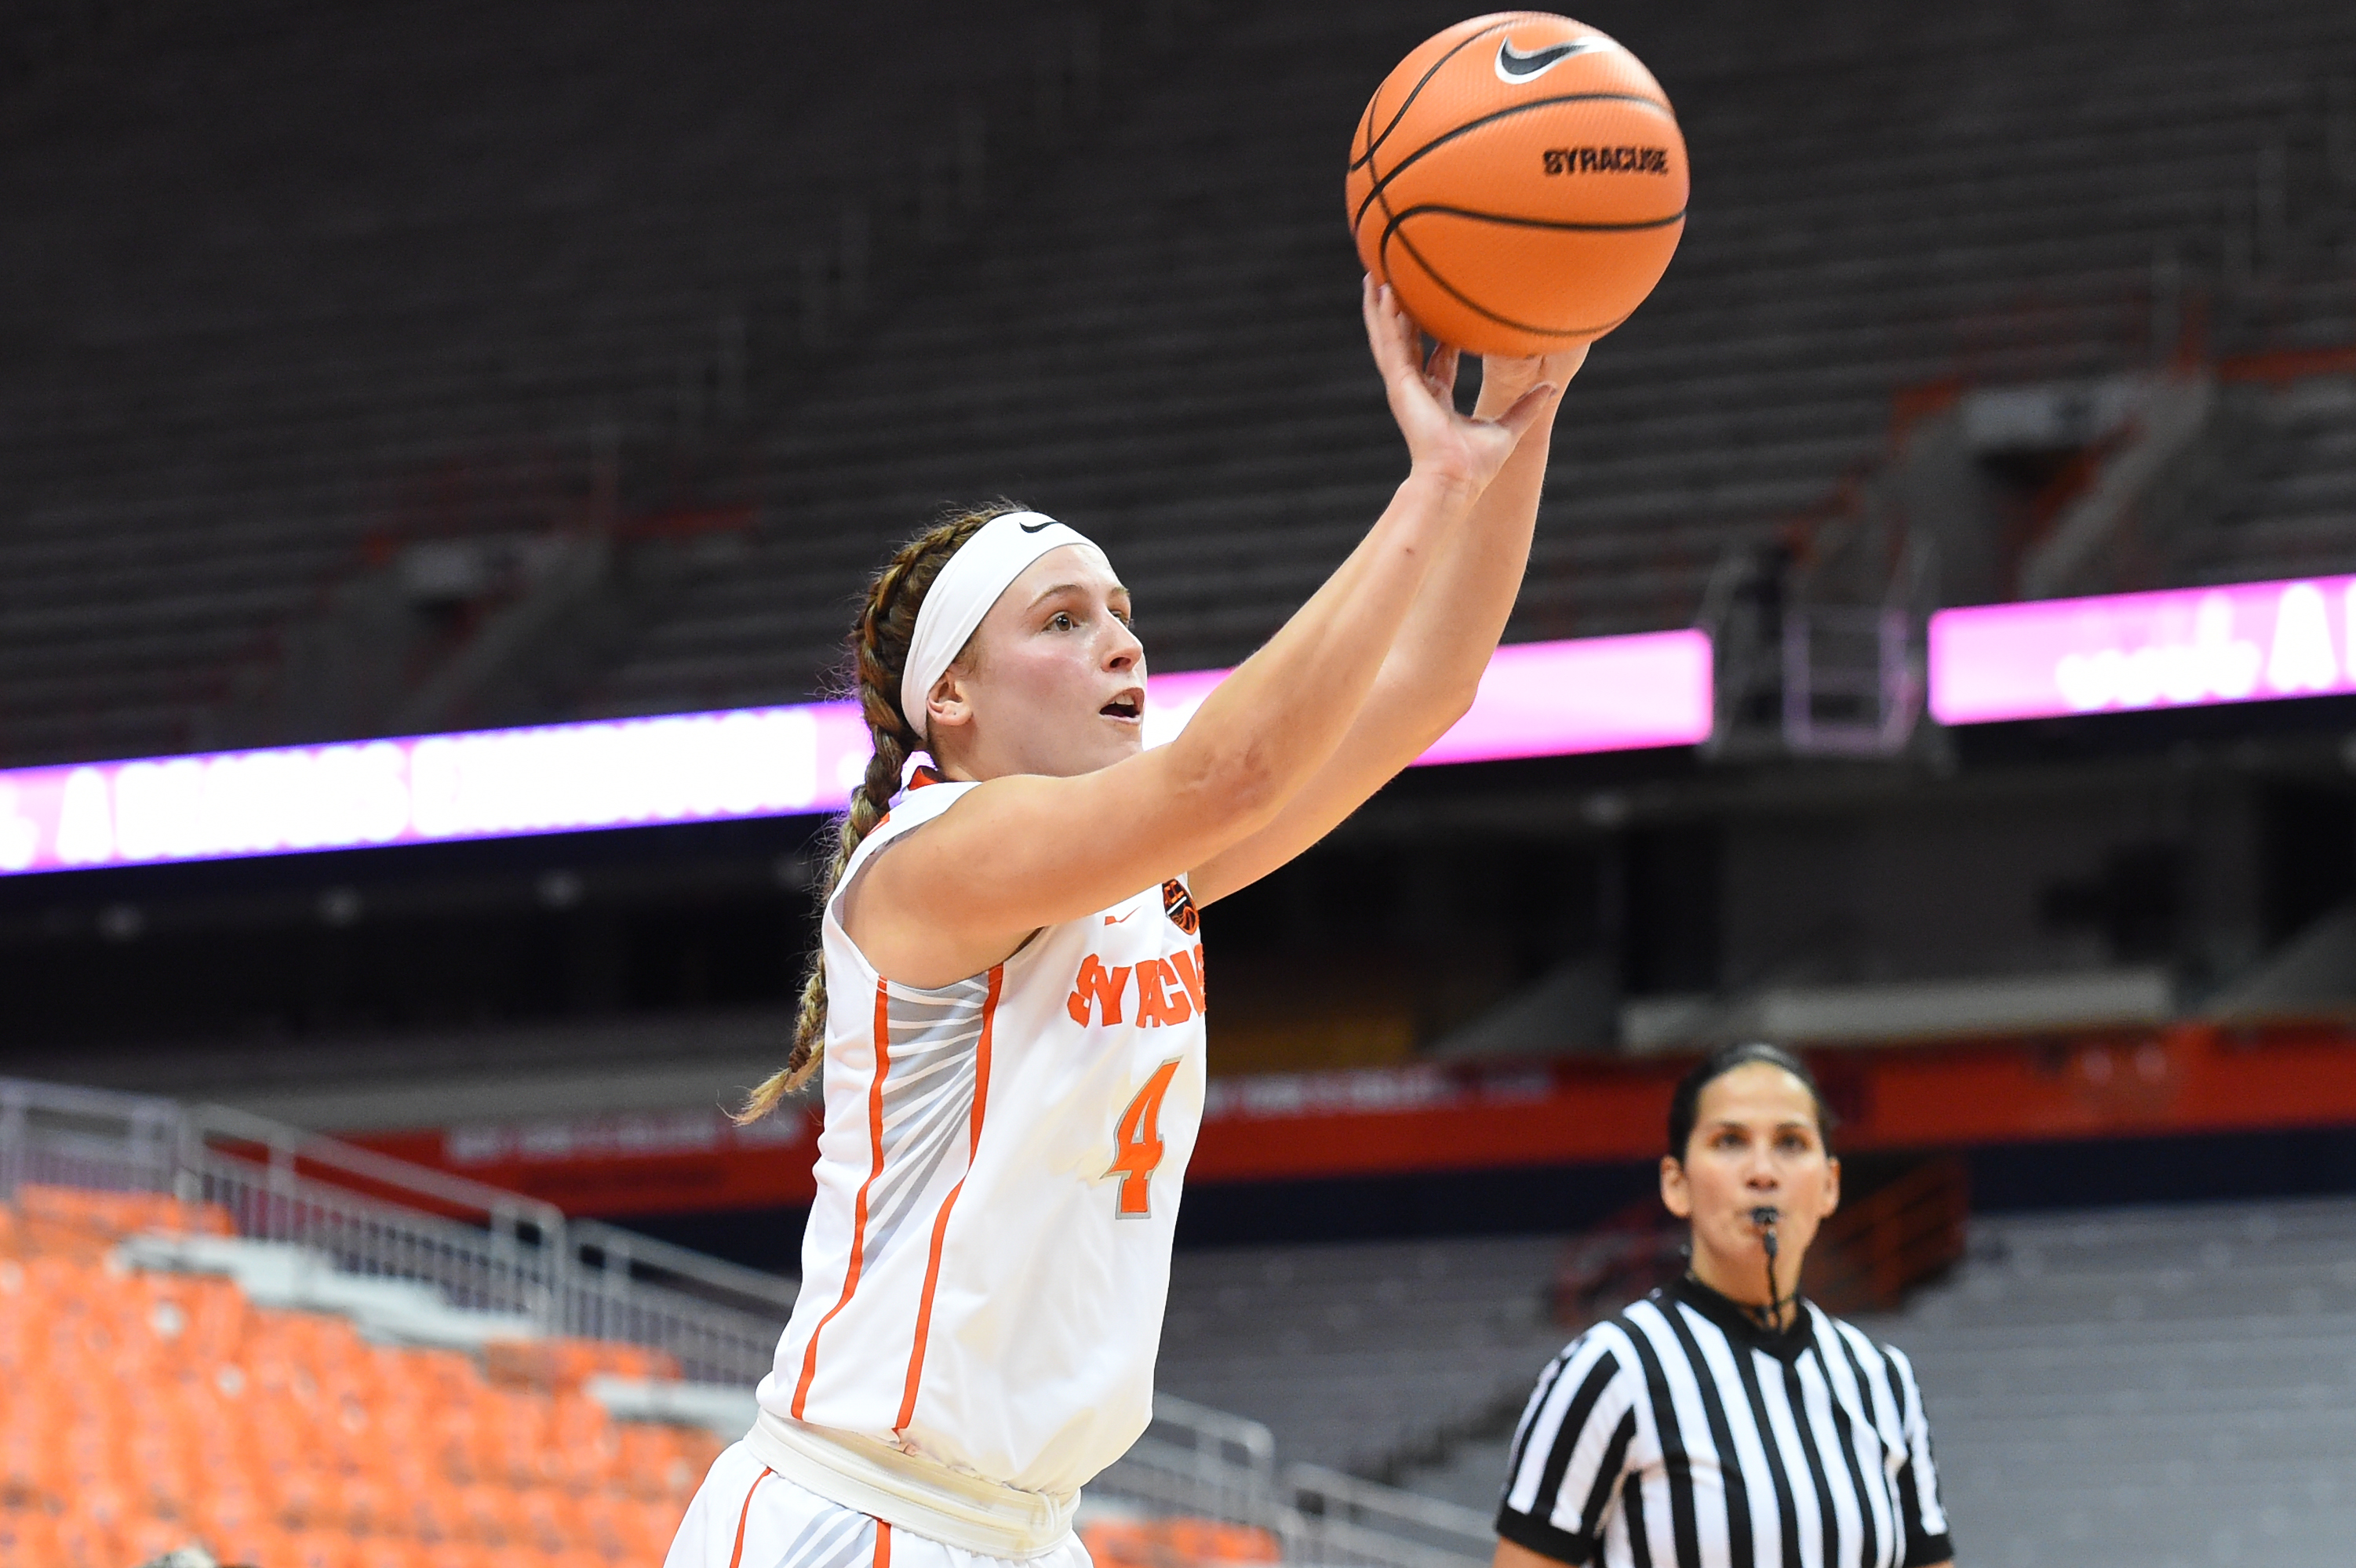 Women\u0027s basketball news: Mangakahia gives Syracuse a playmaker ...